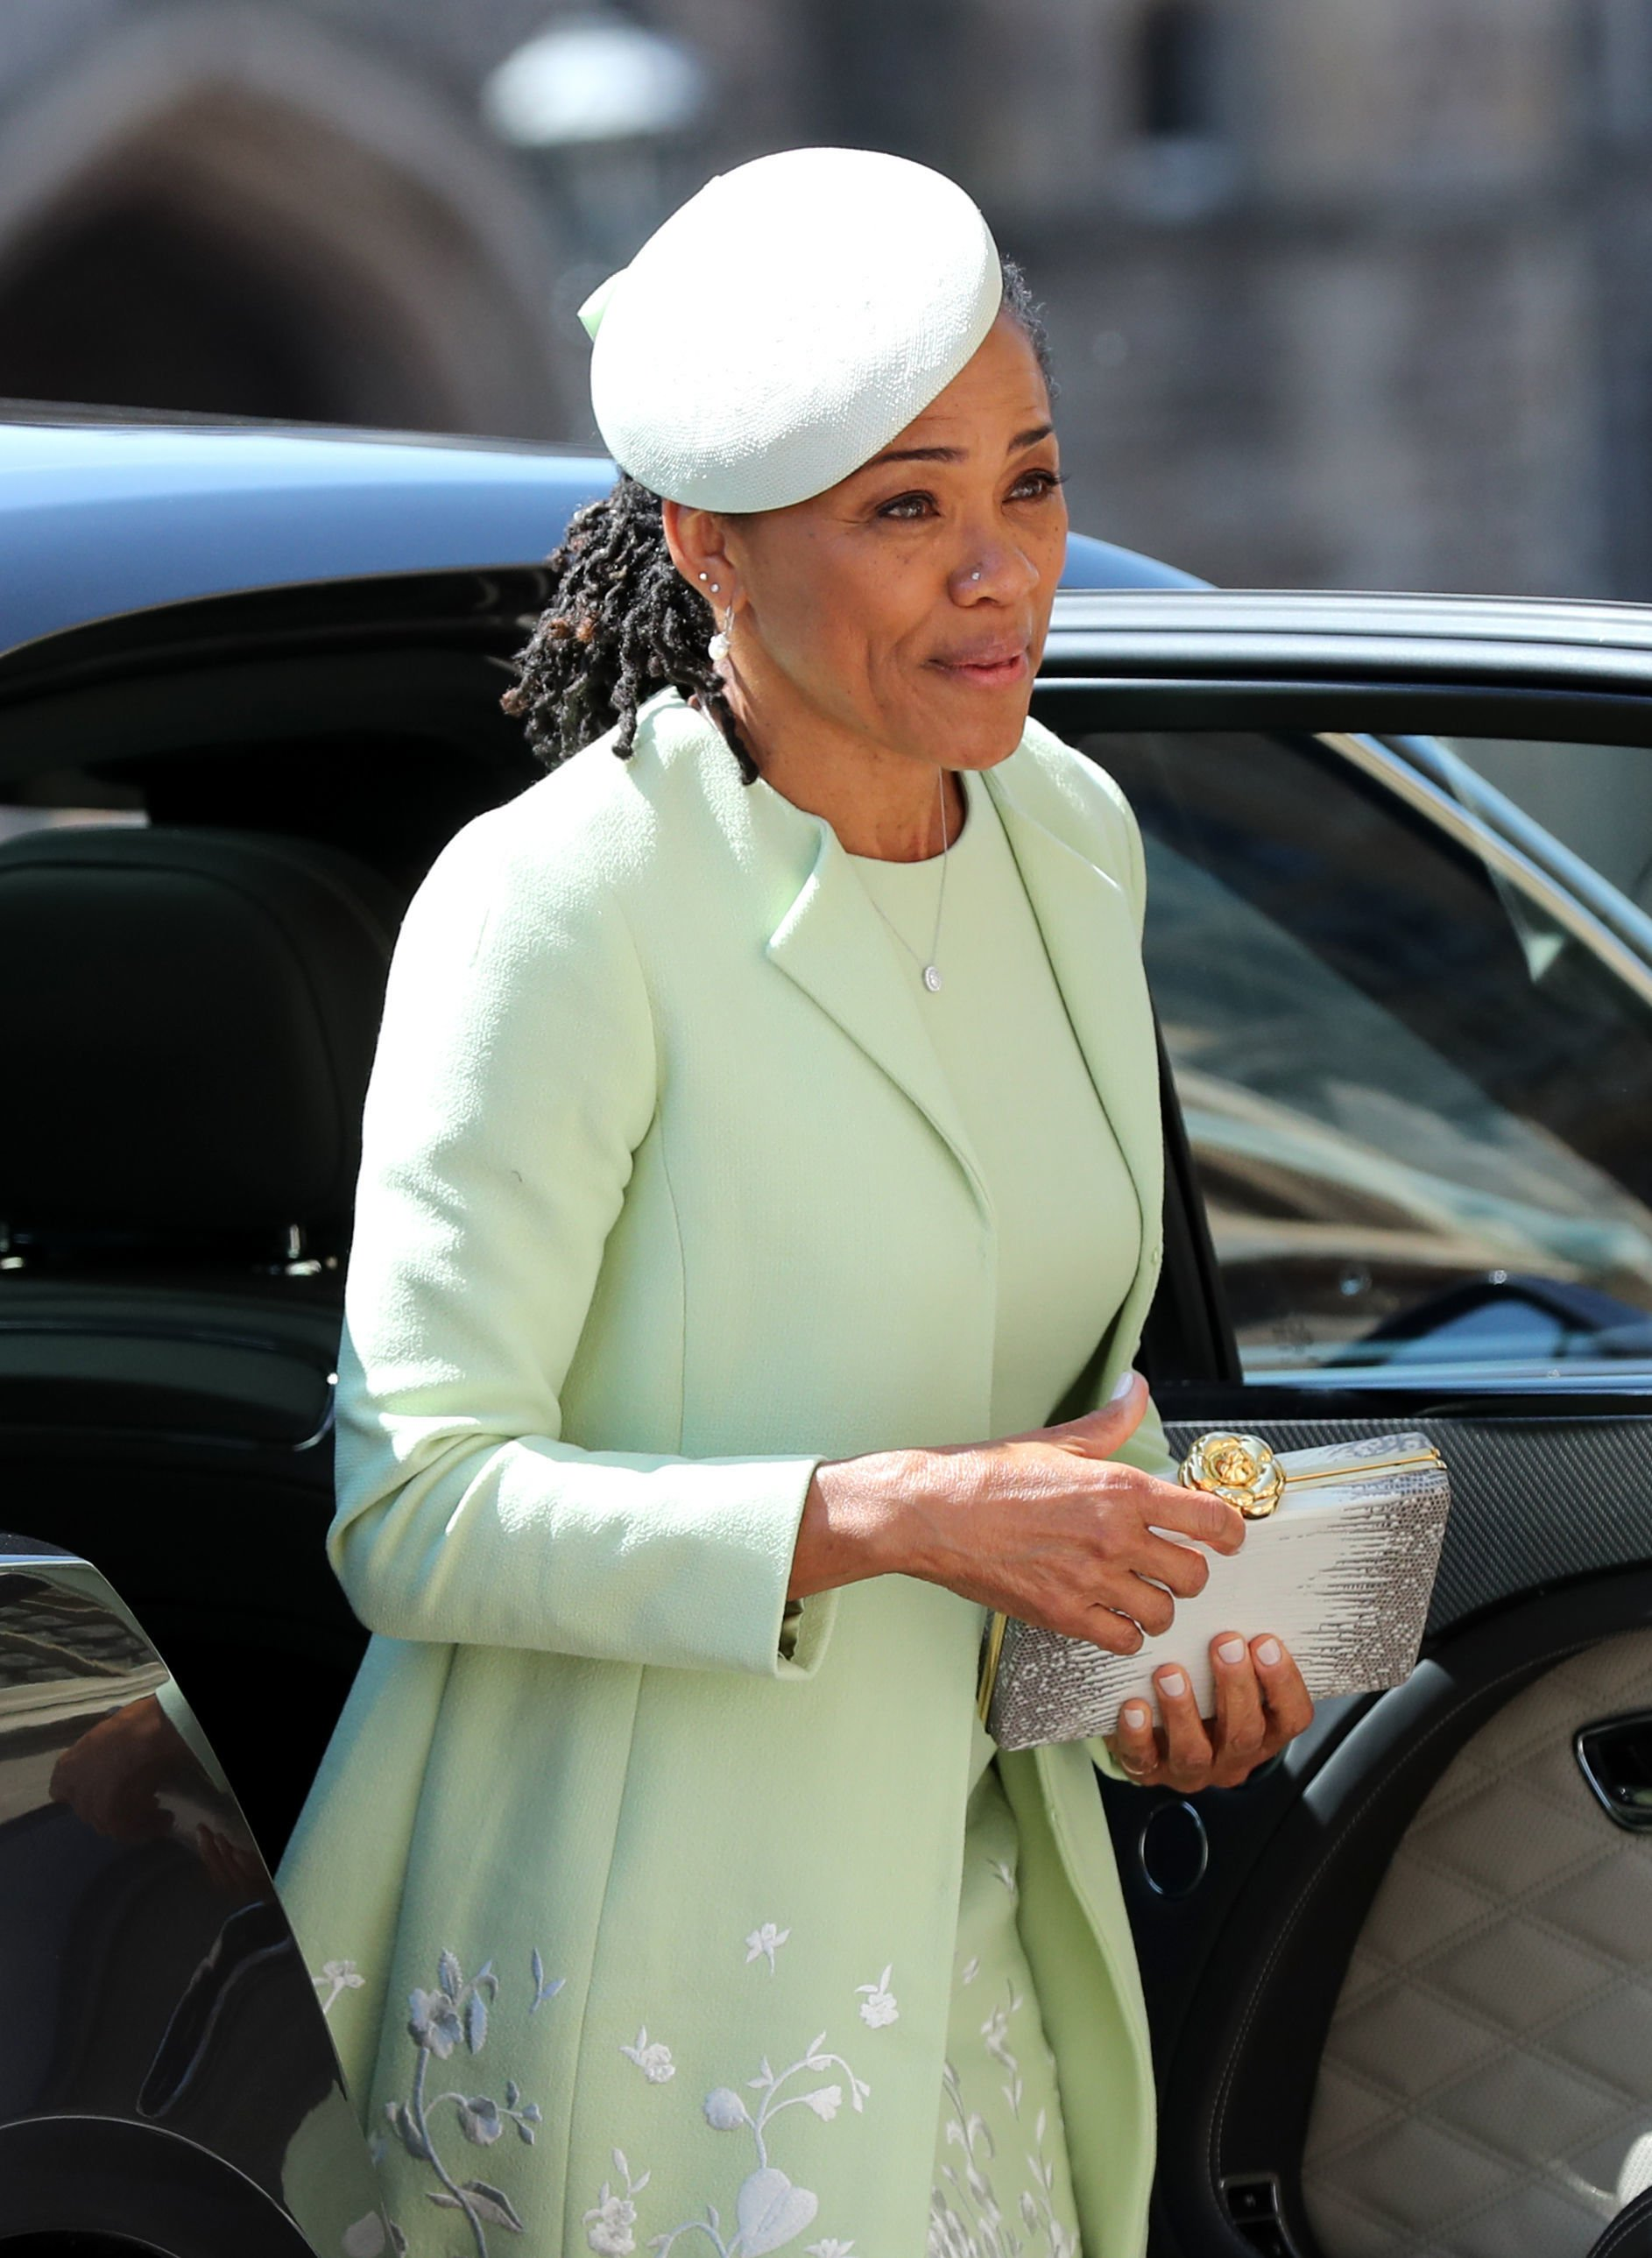 Doria Ragland arrives at St George's Chapel at Windsor Castle before the wedding of Prince Harry to Meghan Markle on May 19, 2018 in Windsor, England | Photo: Getty Images